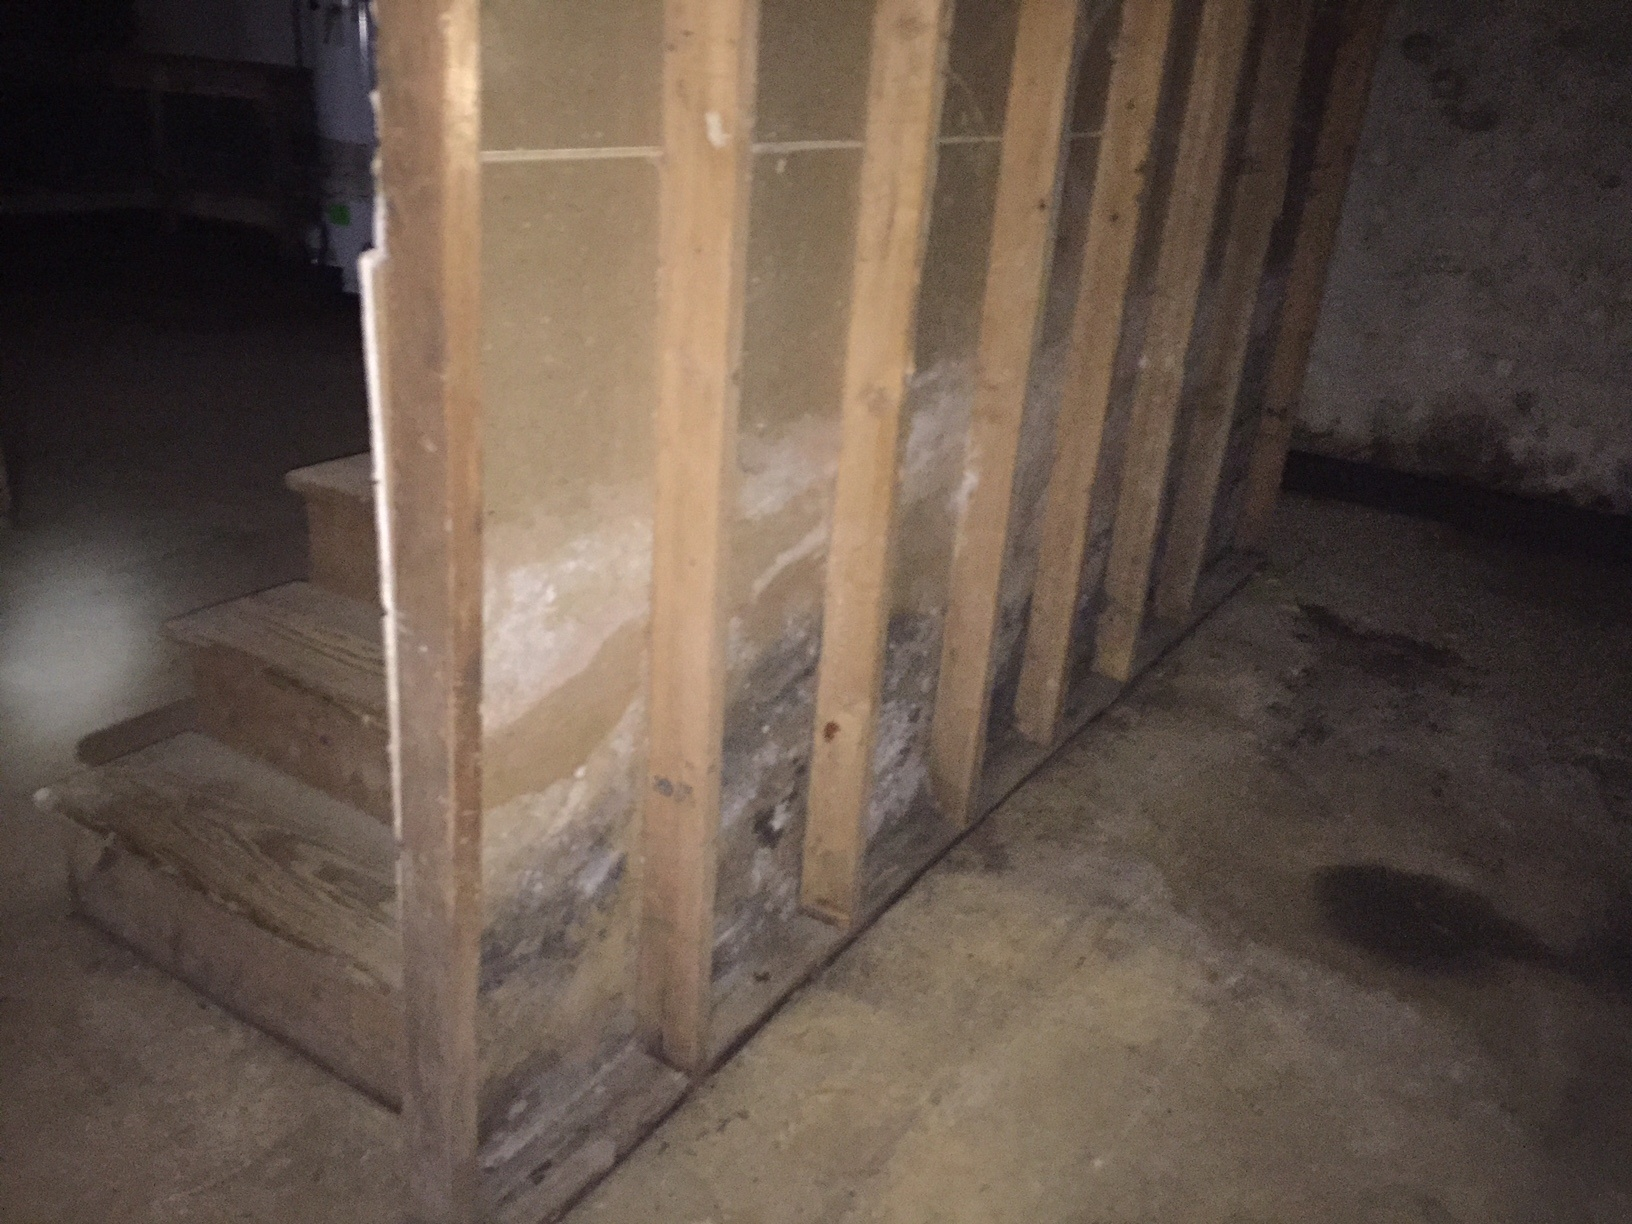 mold in basement.jpg